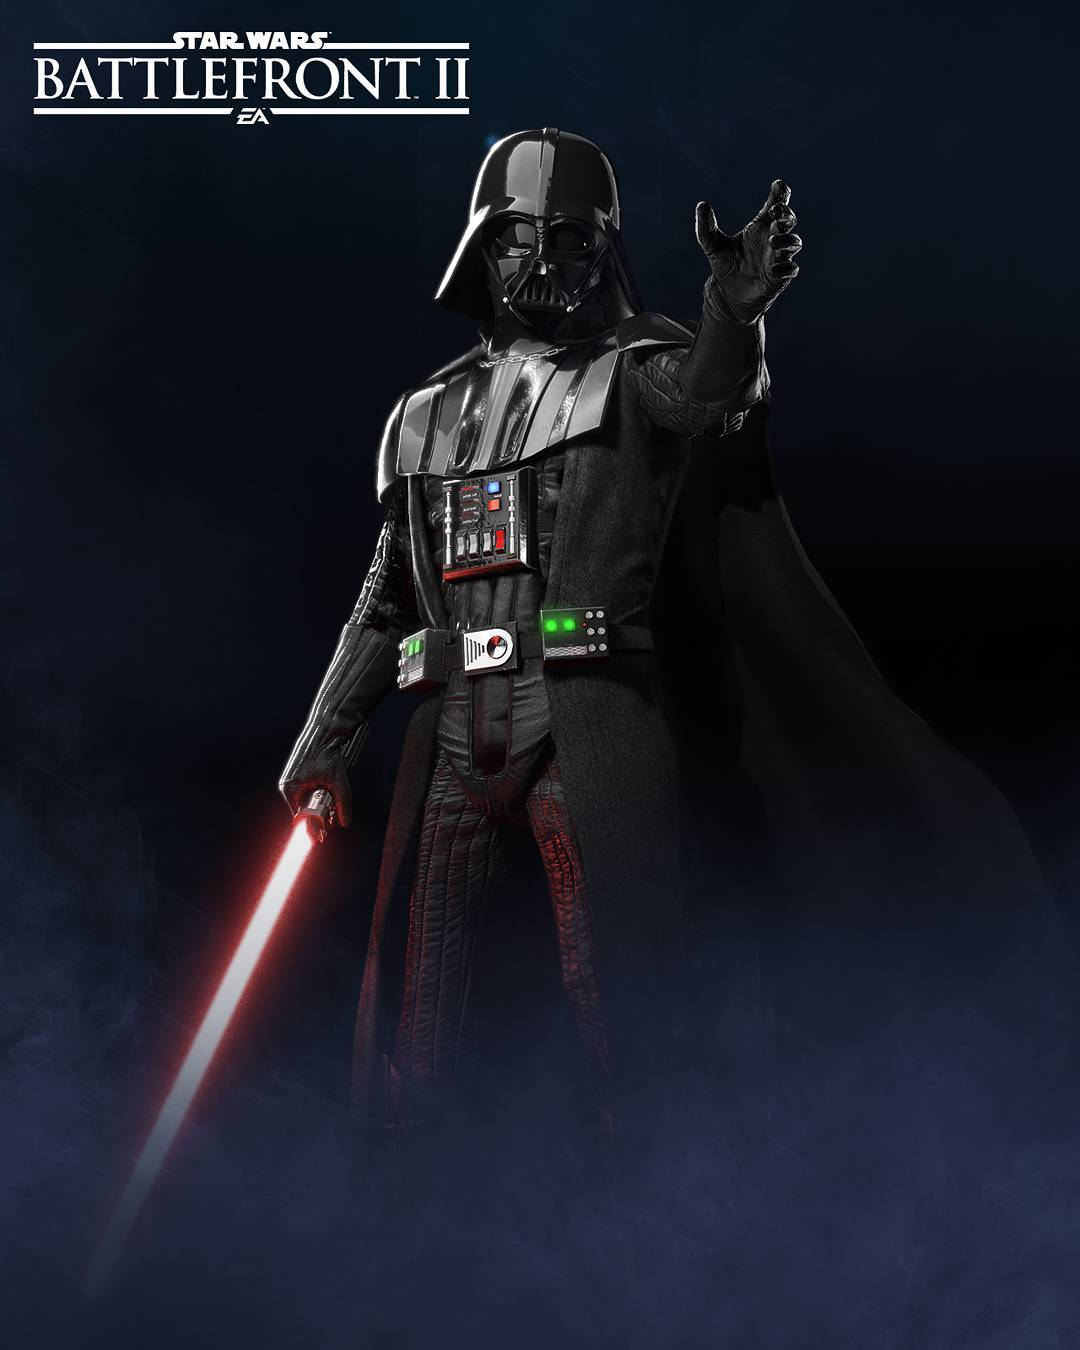 darth vader star wars battlefront wiki fandom powered. Black Bedroom Furniture Sets. Home Design Ideas